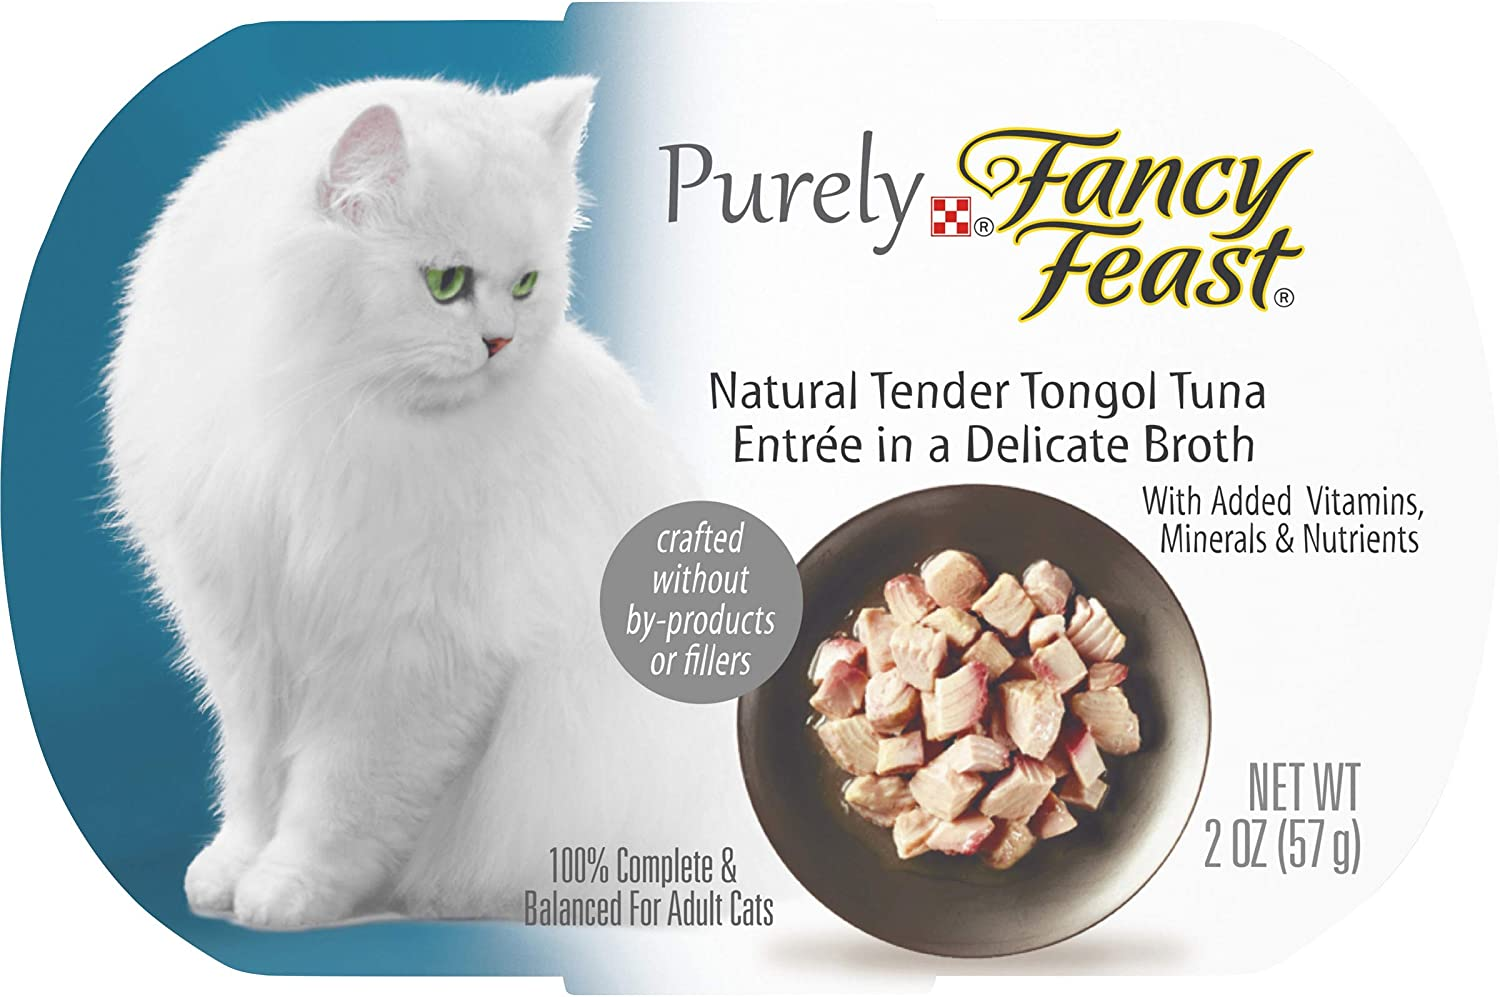 Purina Fancy Feast Natural Wet Cat Food, Purely Natural Tender Tongol Tuna Entree - (10) 2 oz. Trays